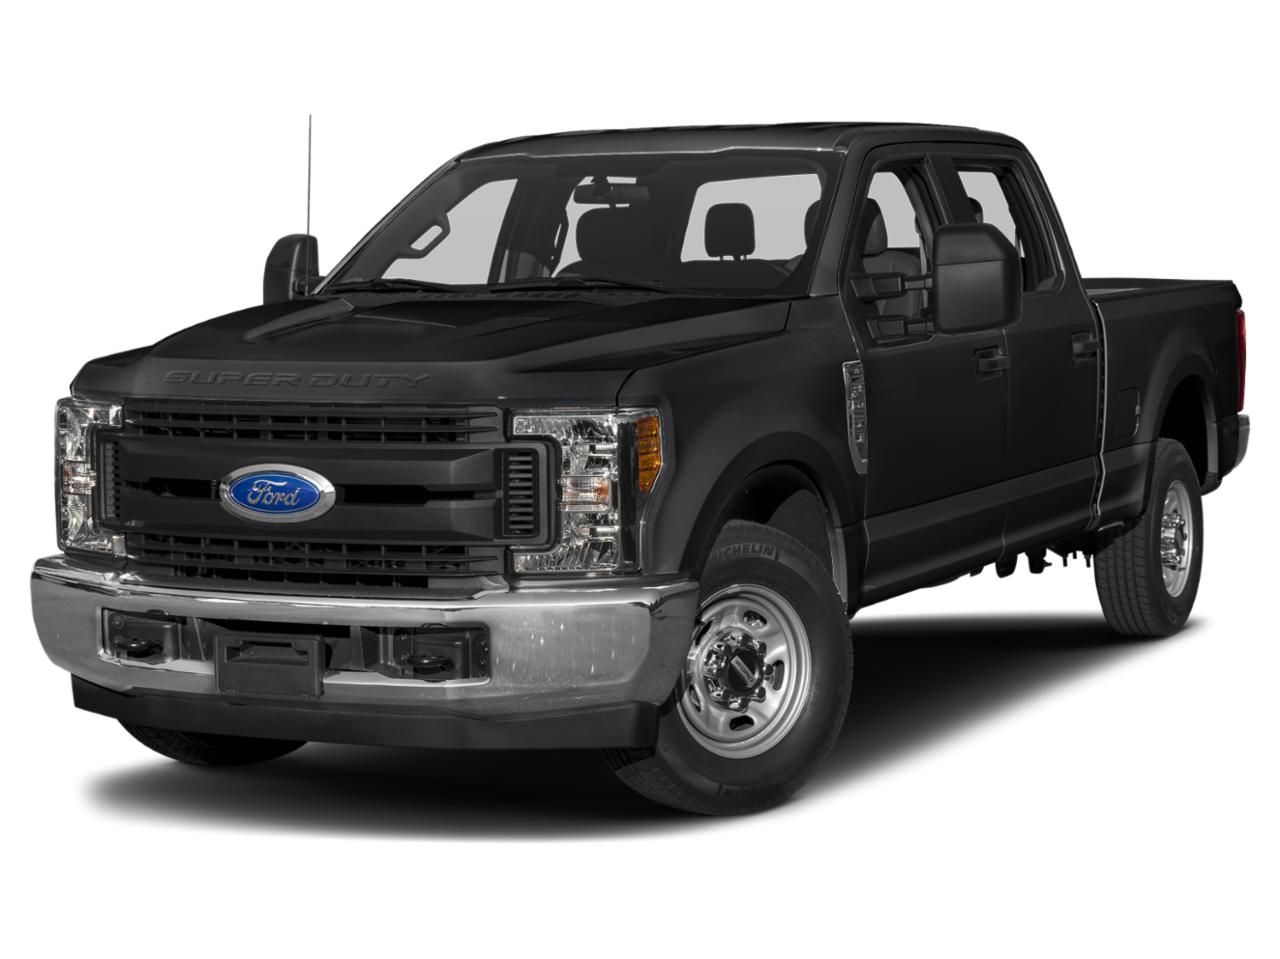 2019 Ford Super Duty F-250 SRW Vehicle Photo in NEENAH, WI 54956-2243